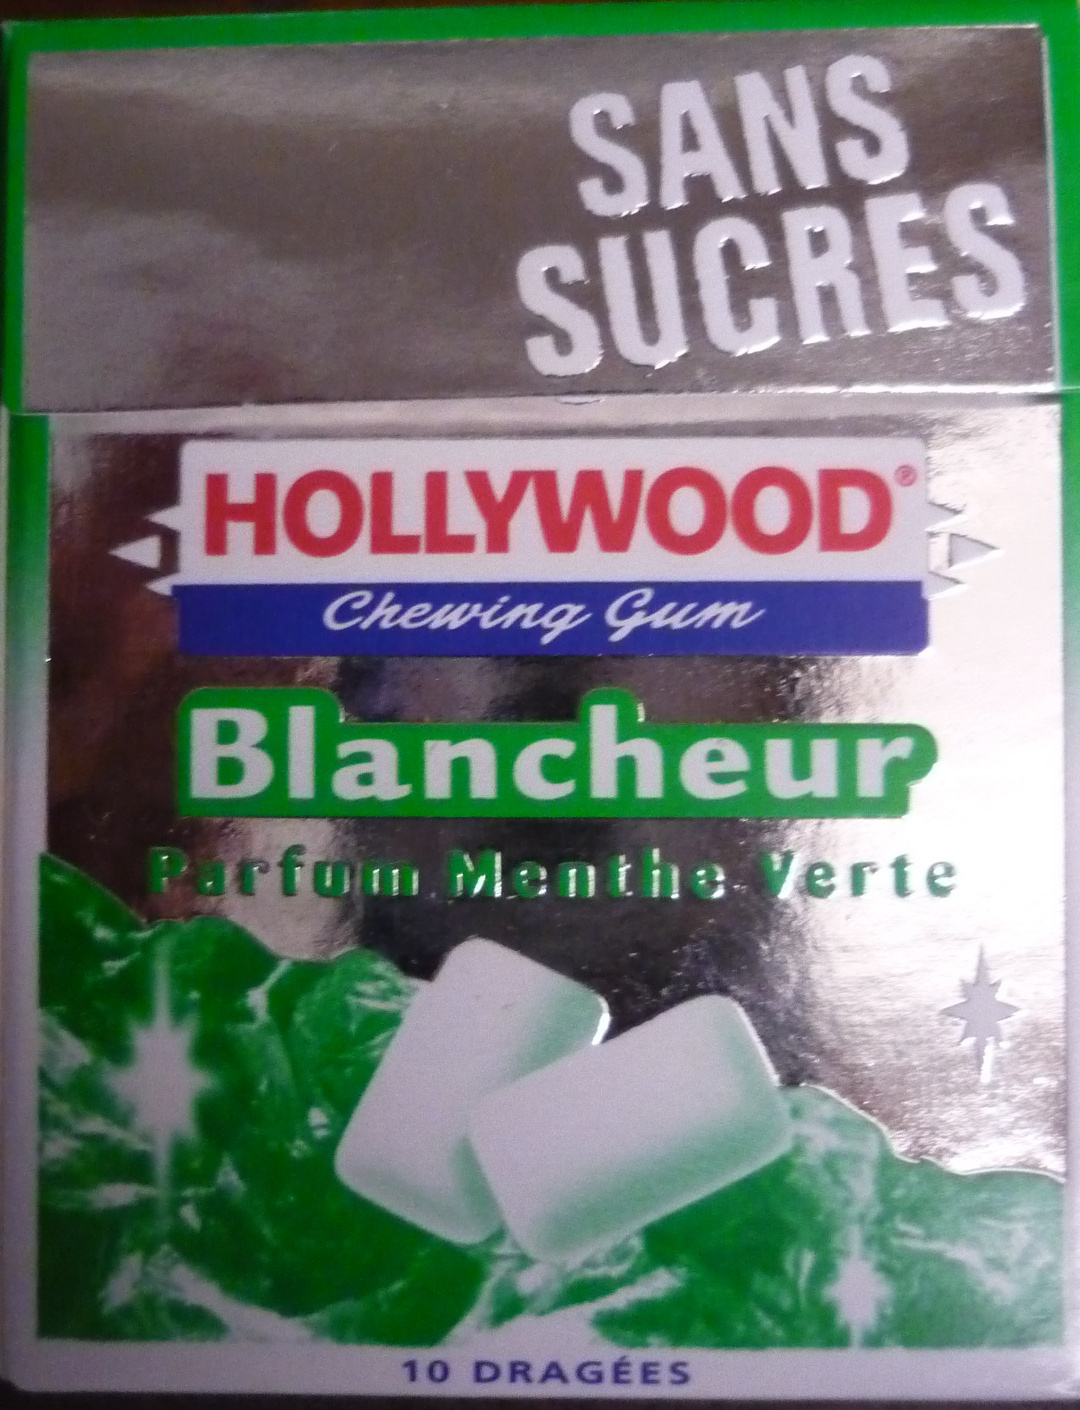 Hollywood Blancheur parfum Menthe Verte - Product